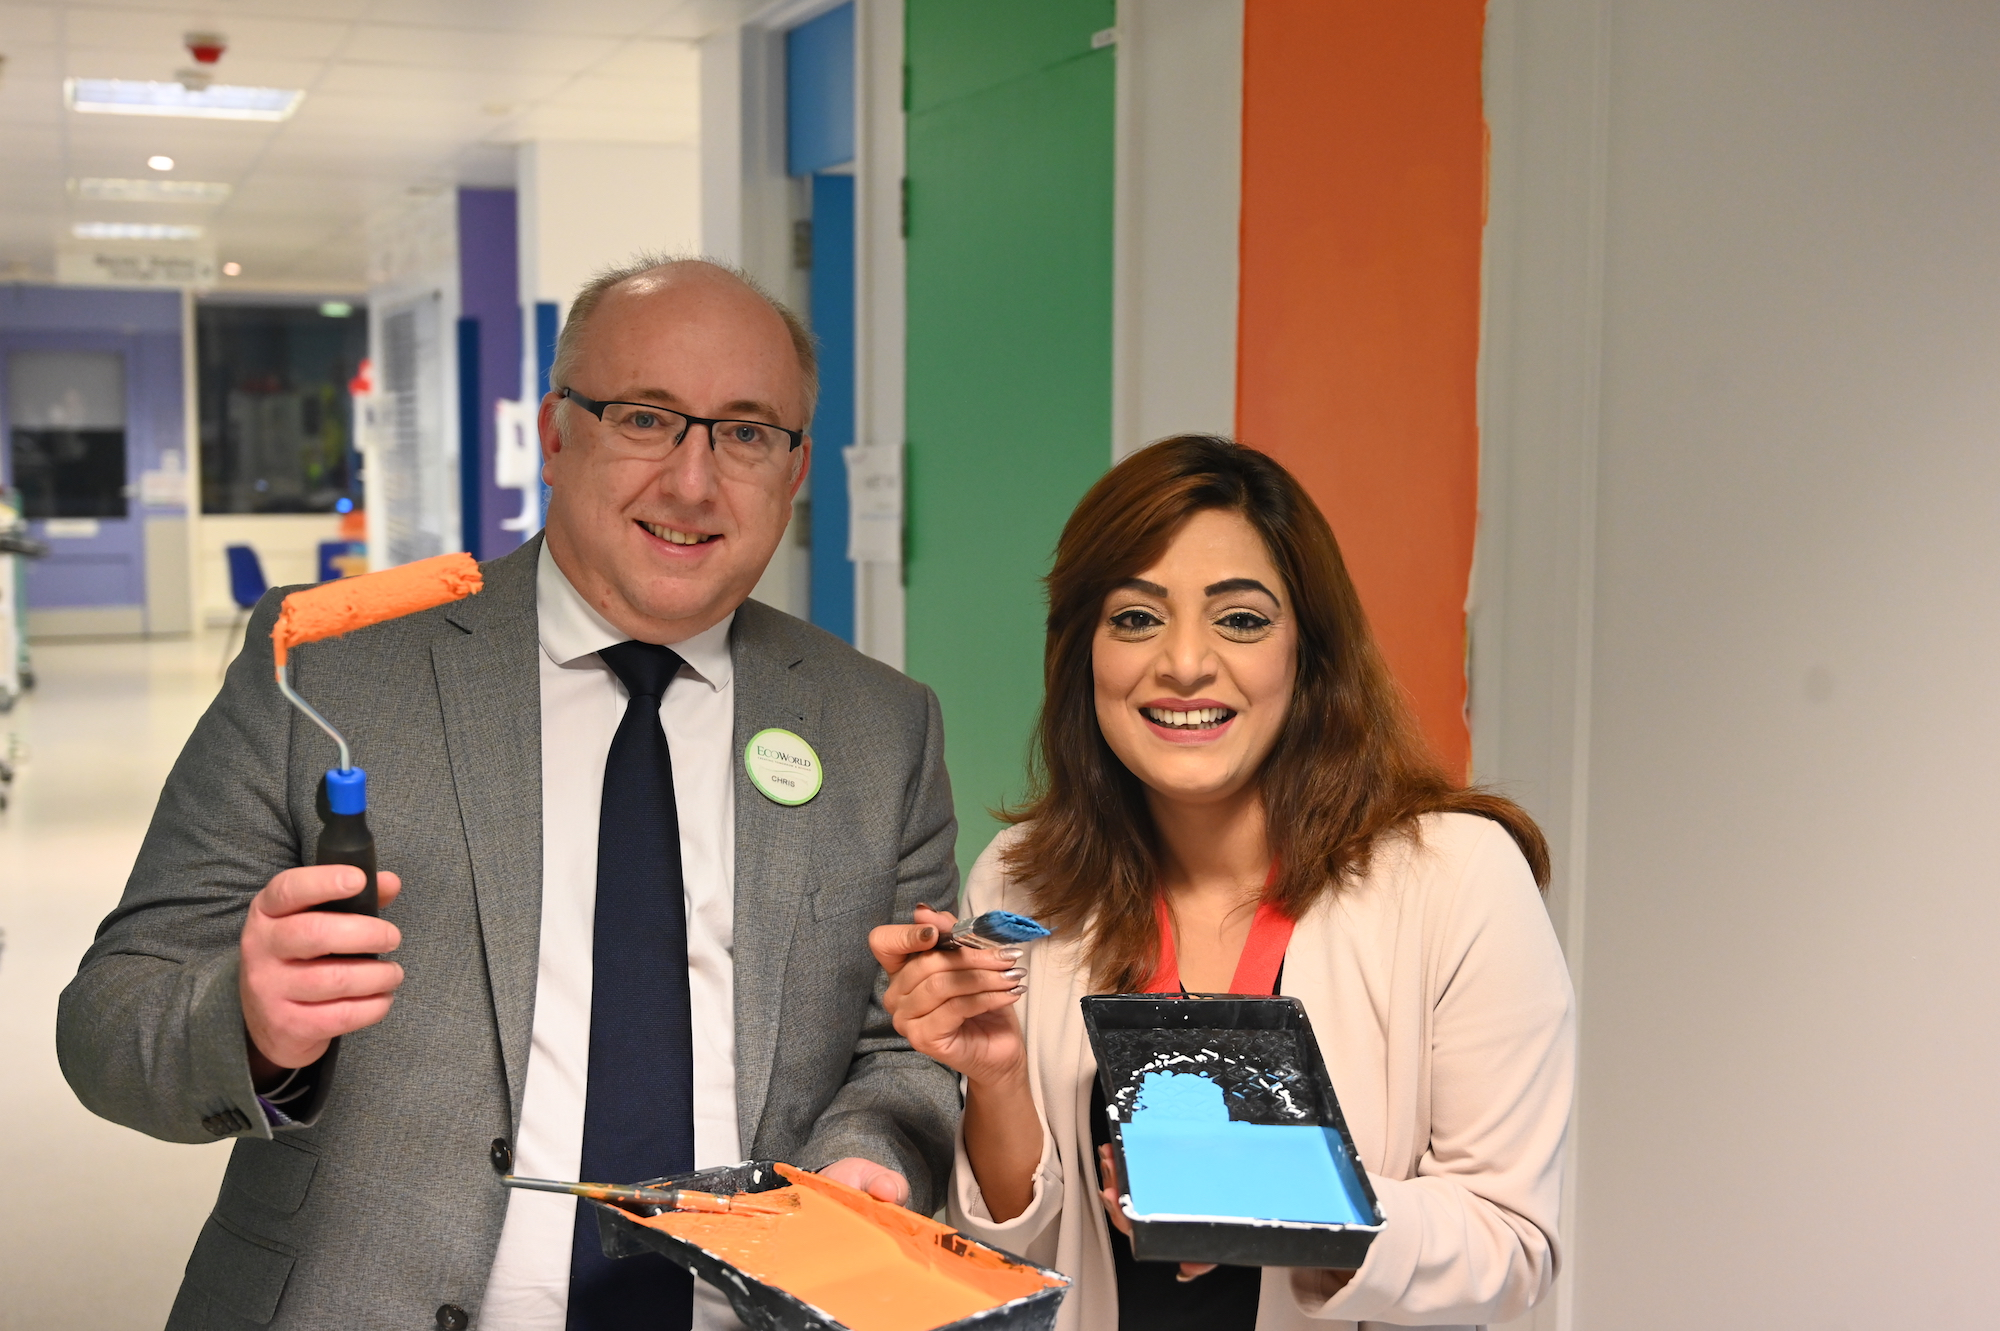 Chris Scott and Samia Chaudhary pose with paintbrushes